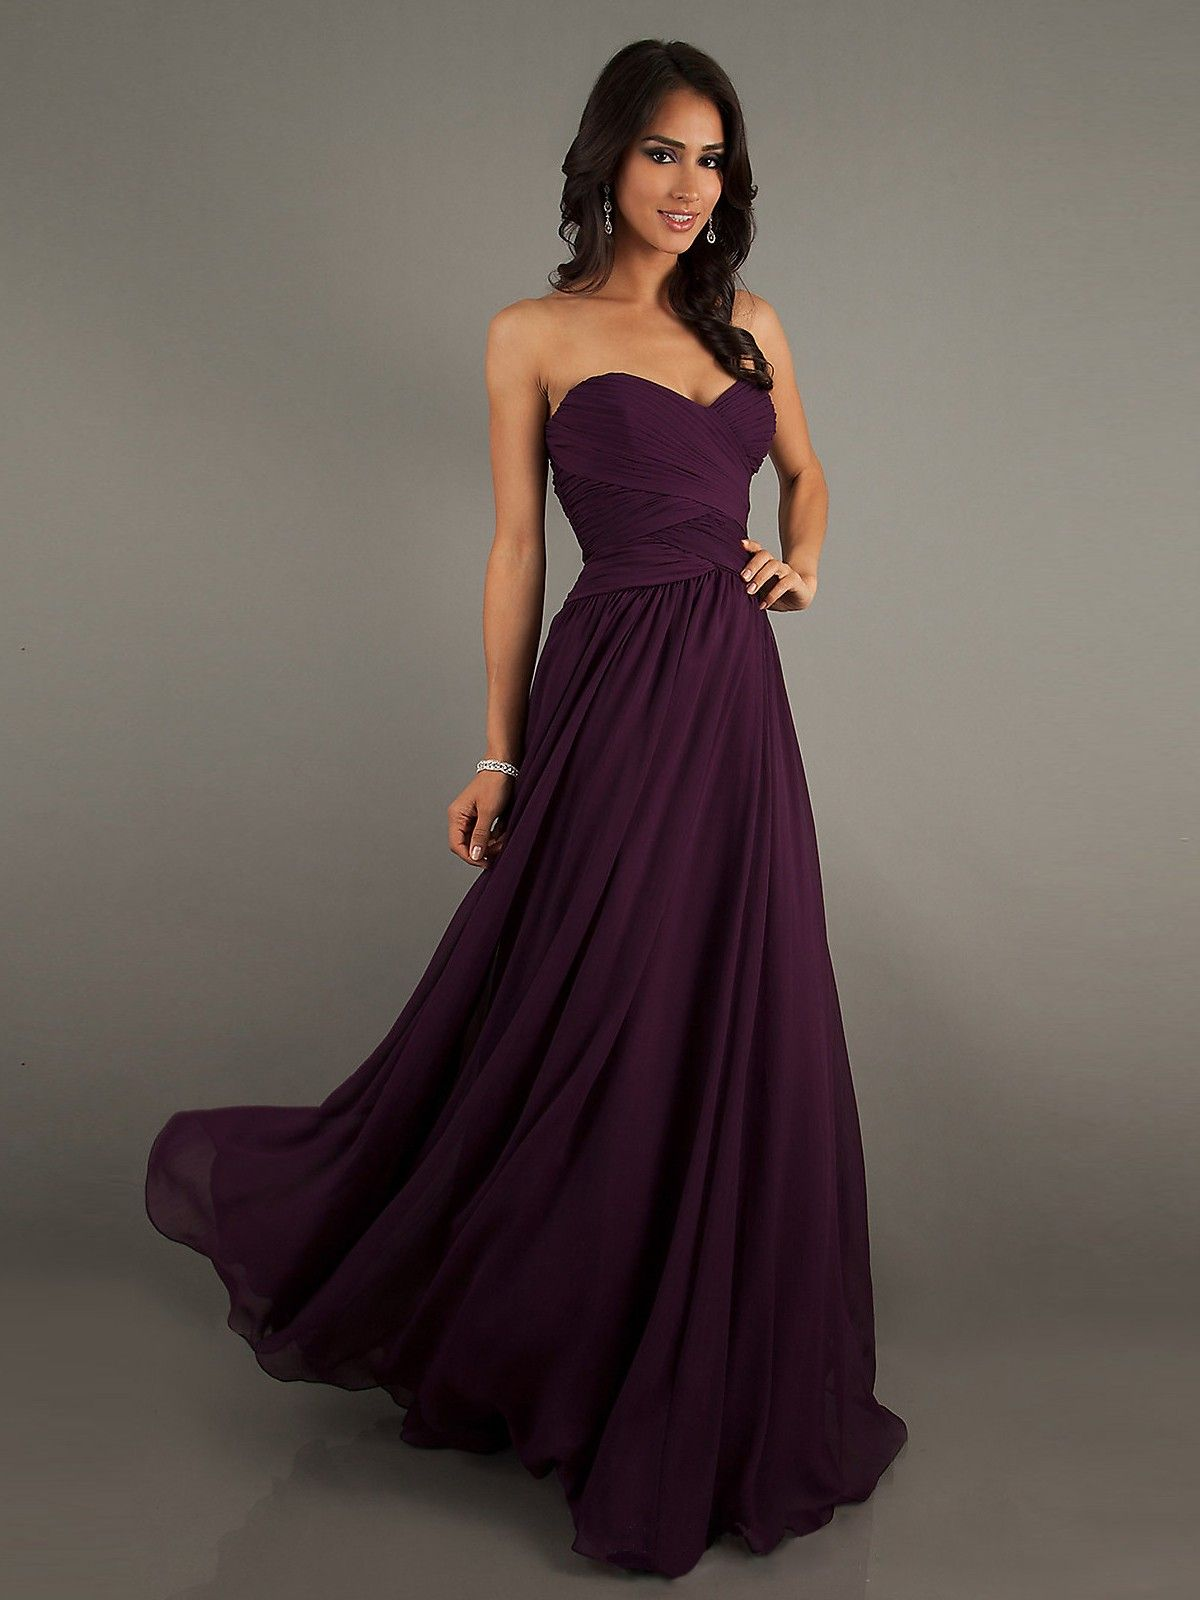 c5bf5e58dd3 2016 New Styles via PromWill~Purple Long Bridesmaid Dress! Up to 80% Off~